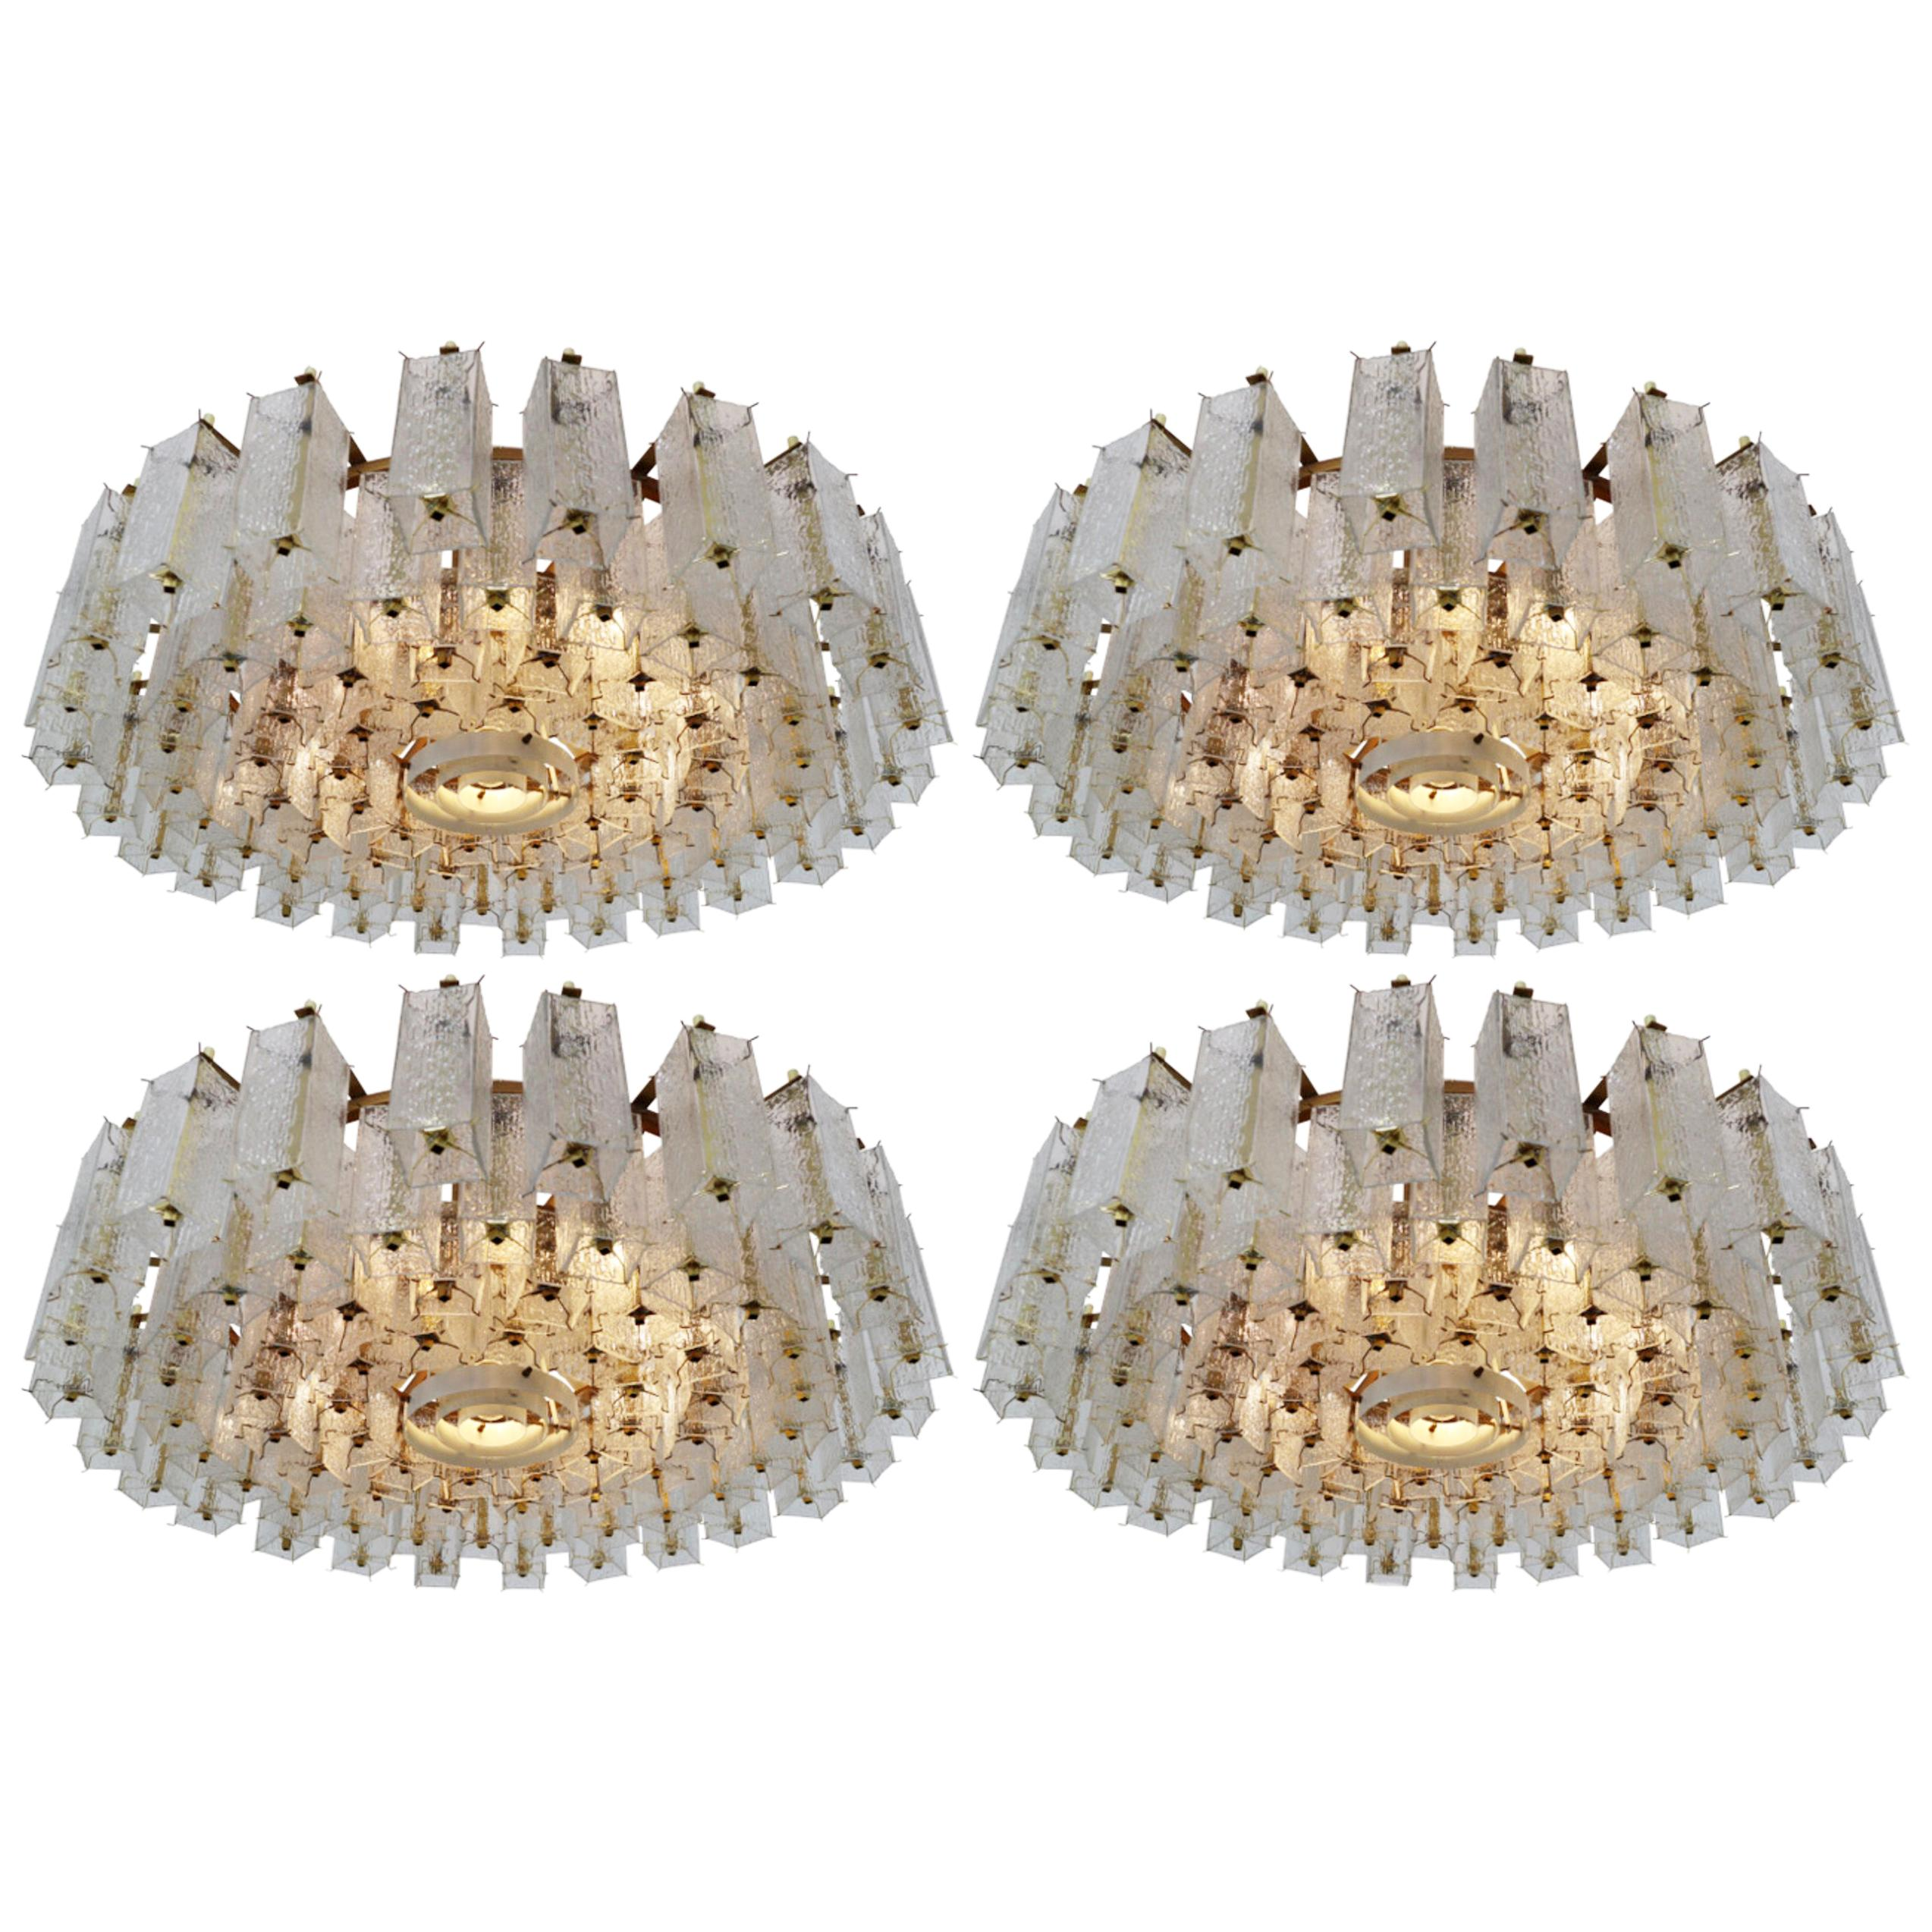 4 Extreme Large Midcentury Chandeliers in Structured Glass and Brass from Europe